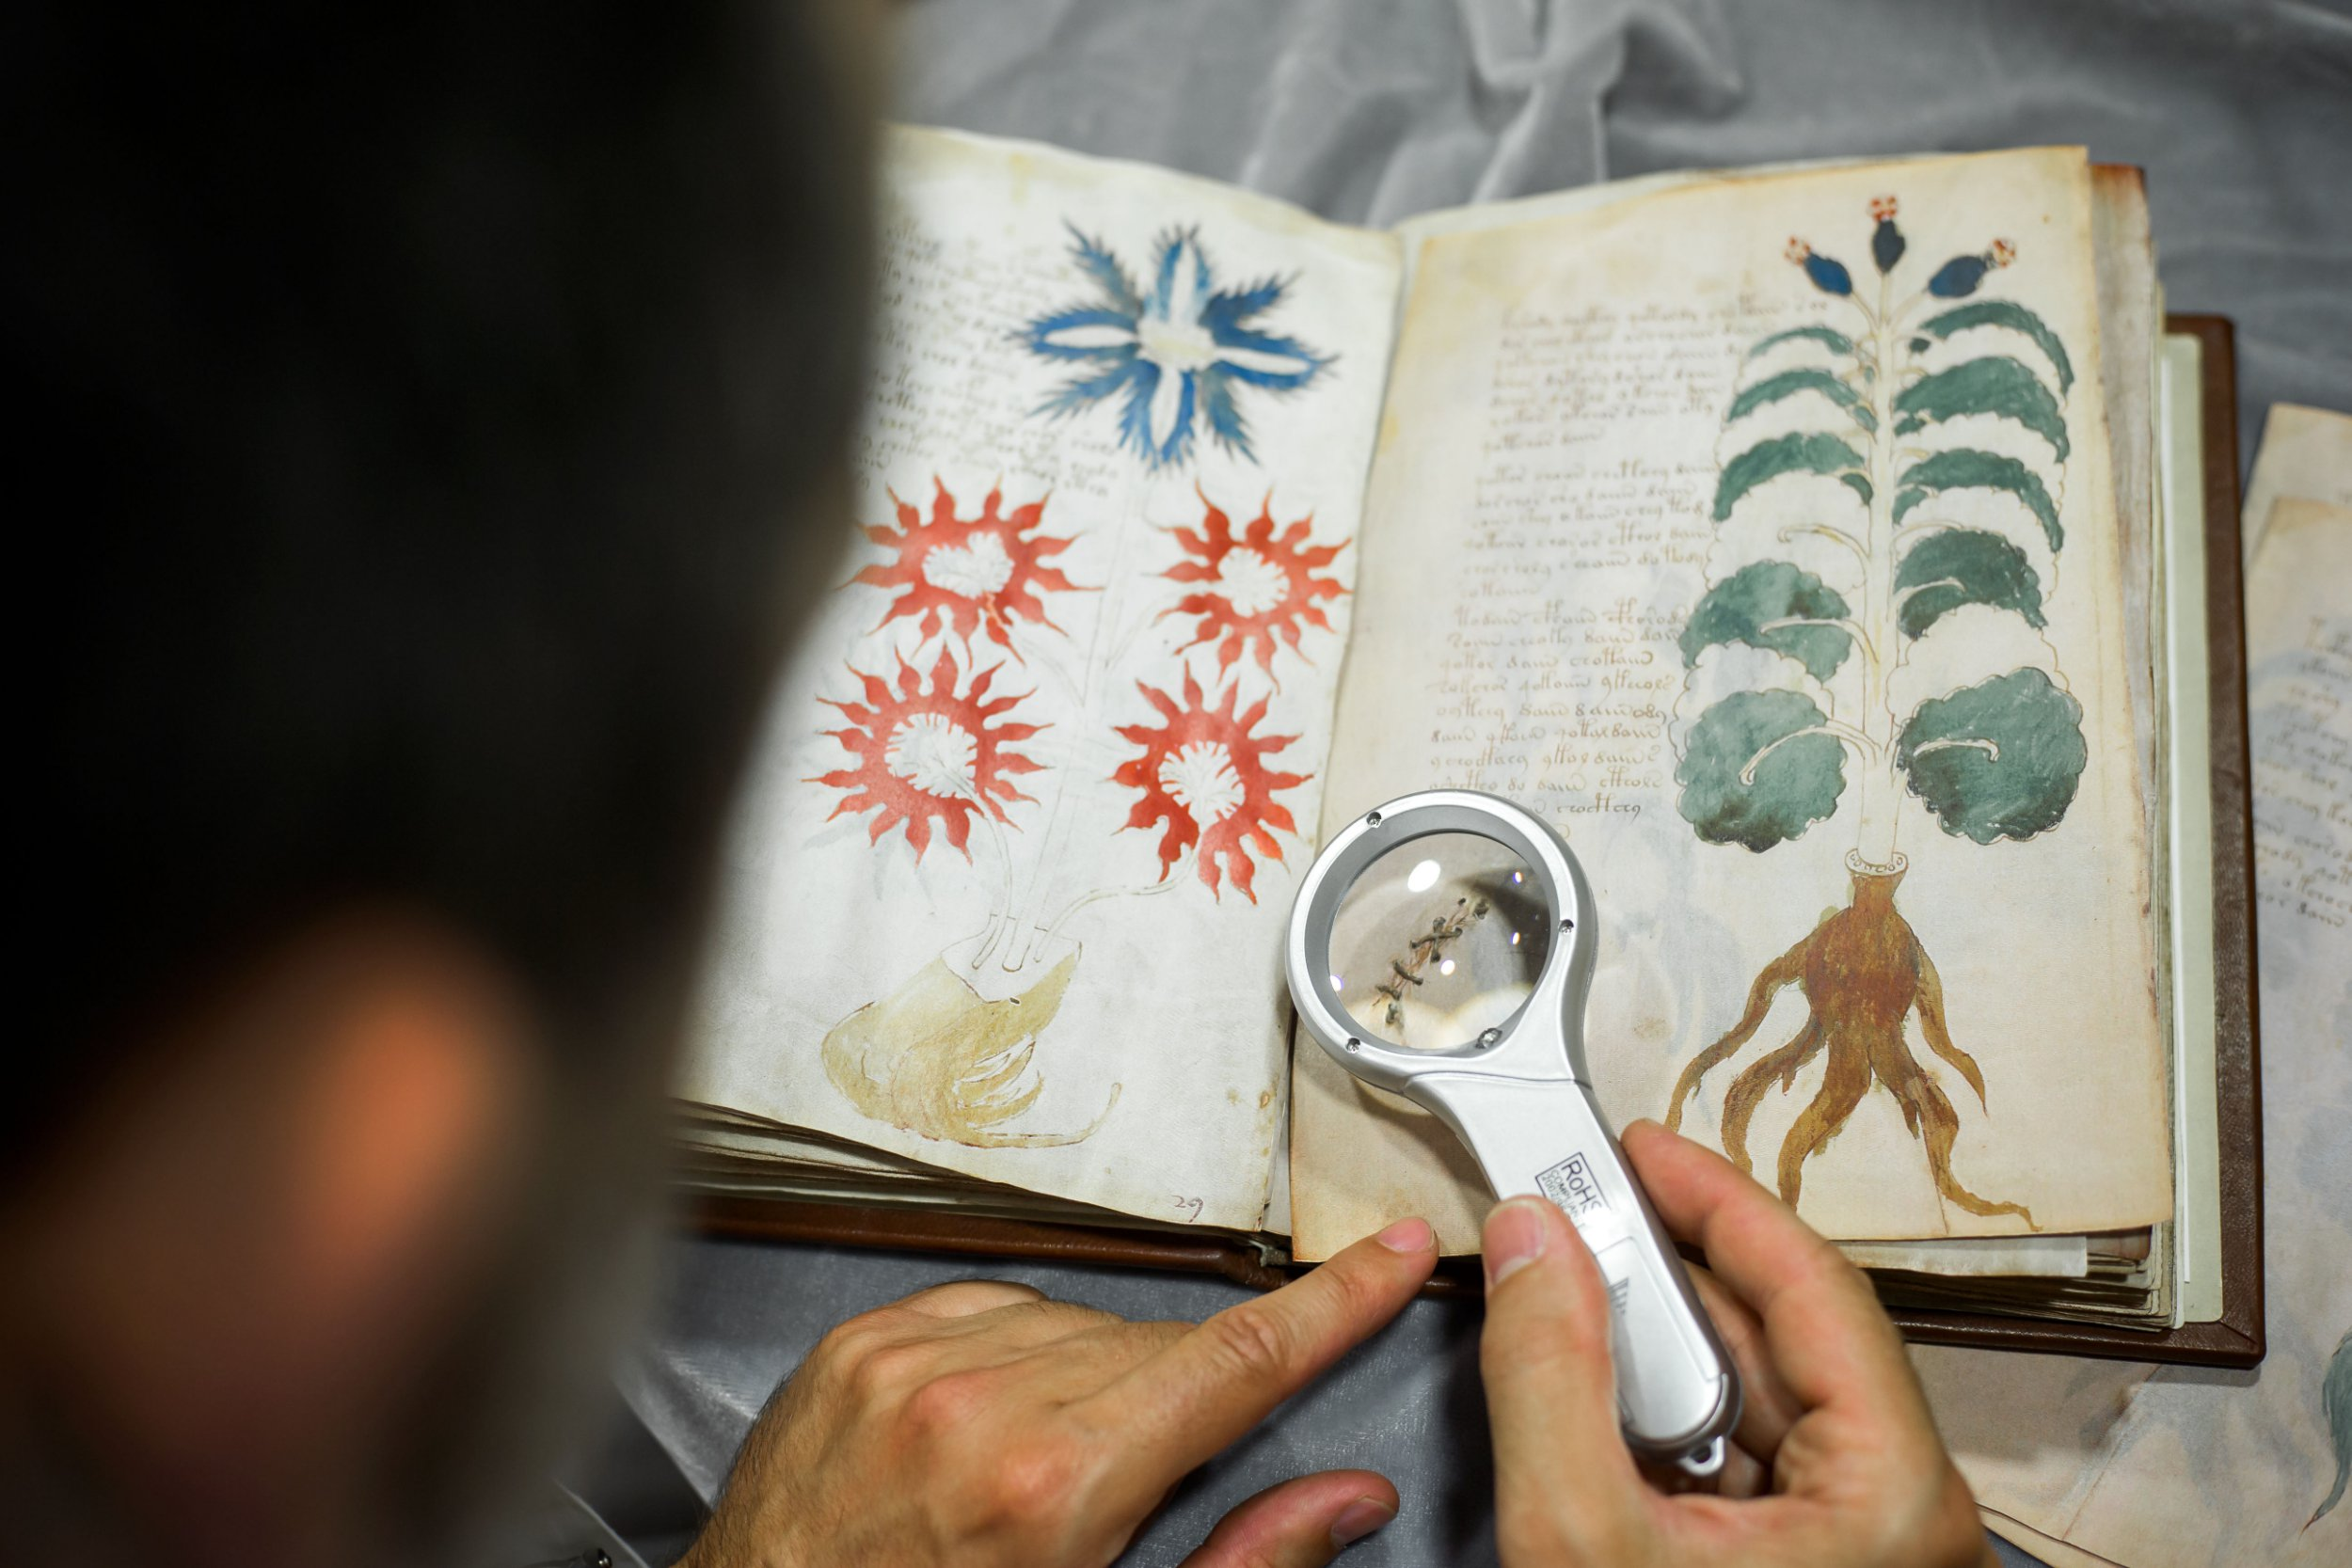 Quality control operator of the Spanish publishing outfit Siloe Luis Miguel works on cloning the illustrated codex hand-written manuscript Voynich in Burgos on August 9, 2016. The so-called Voynich Manuscript, a small unassuming book usually stored in a Yale University vault, is one of the most mysterious books in the world, that a small publishing house in northern Spain has finally secured the right to clone. The precious document containing elegant writing and strange drawings of unidentified plants and naked women is believed to have been written six centuries ago in an unknown or coded language that no one -- not even the best cryptographers -- has ever cracked. / AFP / CESAR MANSO / TO GO WITH AFP STORY BY MARIANNE BARRIAUX - (Photo credit should read CESAR MANSO/AFP/Getty Images)